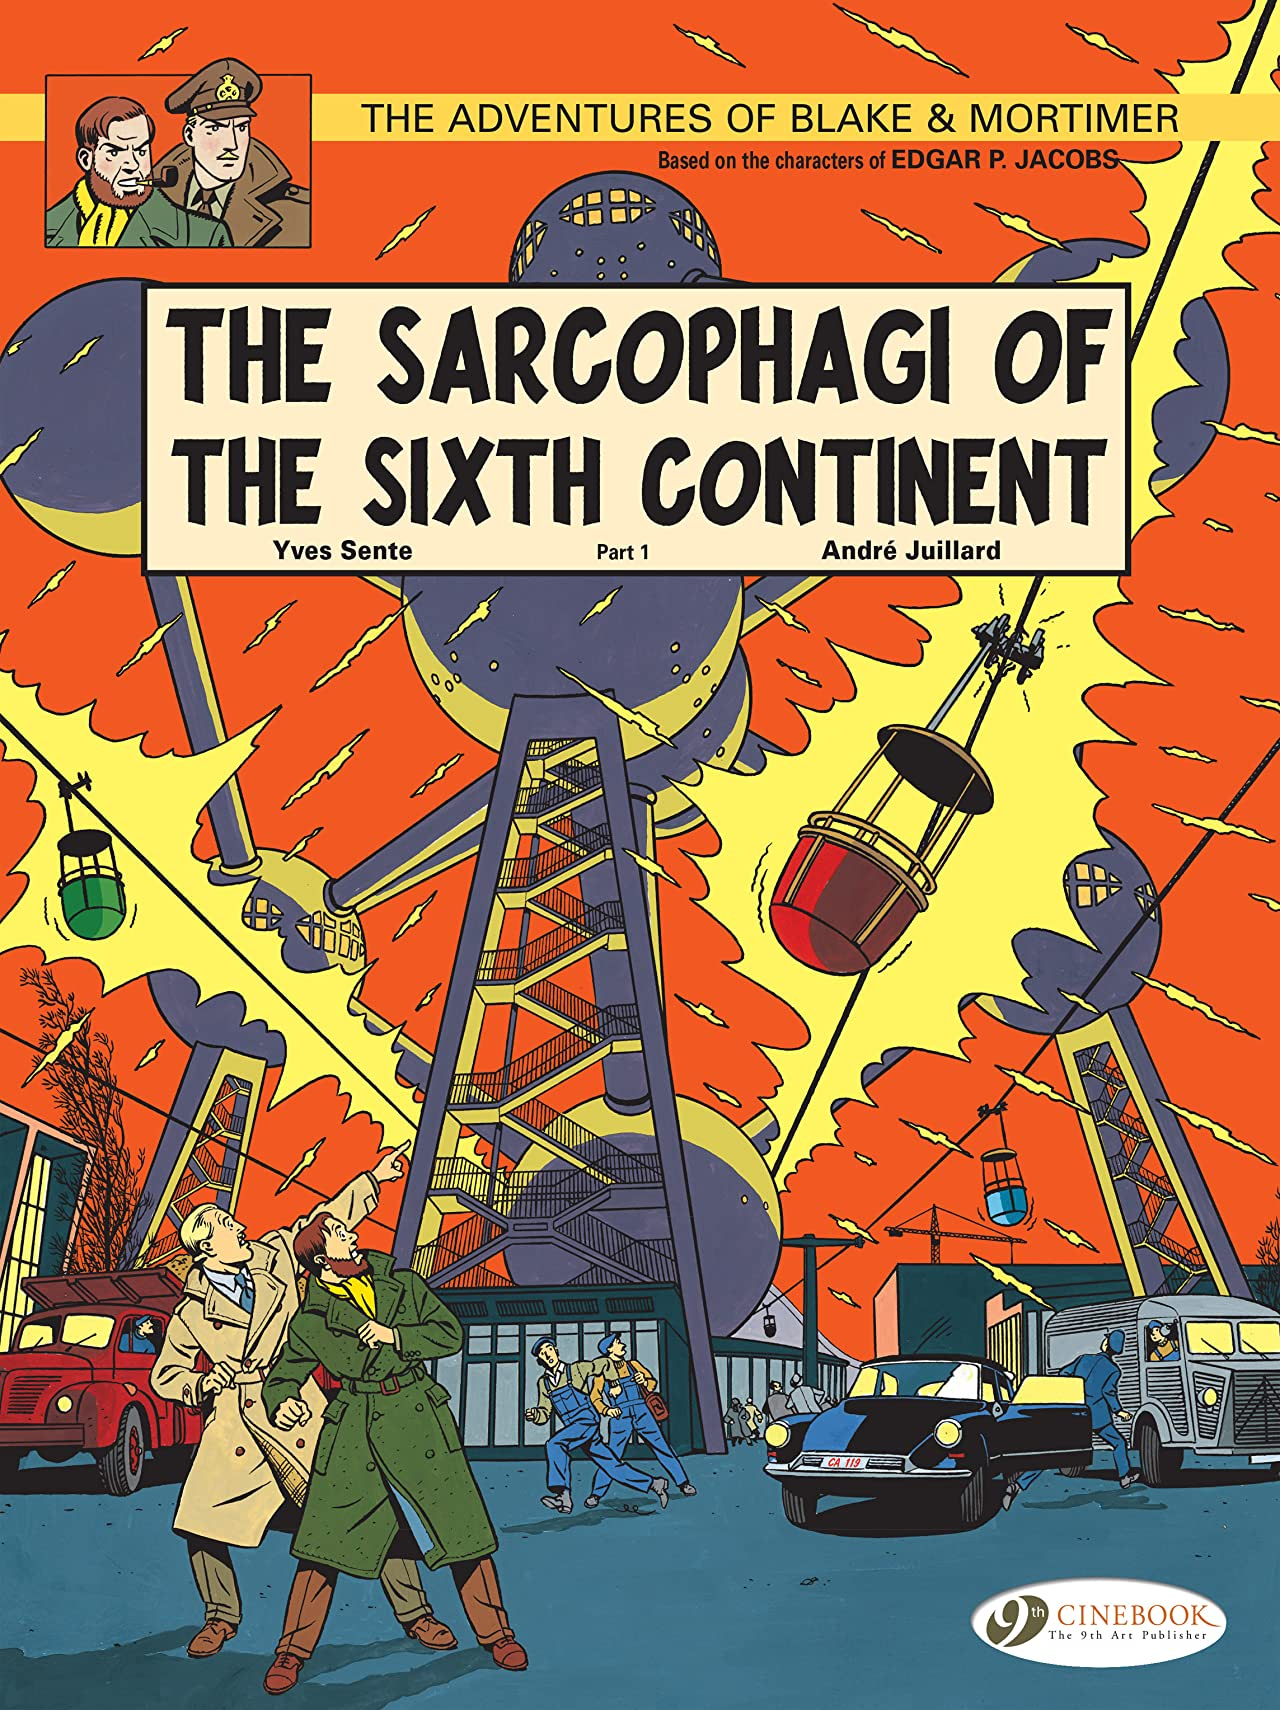 Blake & Mortimer Vol. 9: The Sarcophagi of the Sixth Continent Part 1